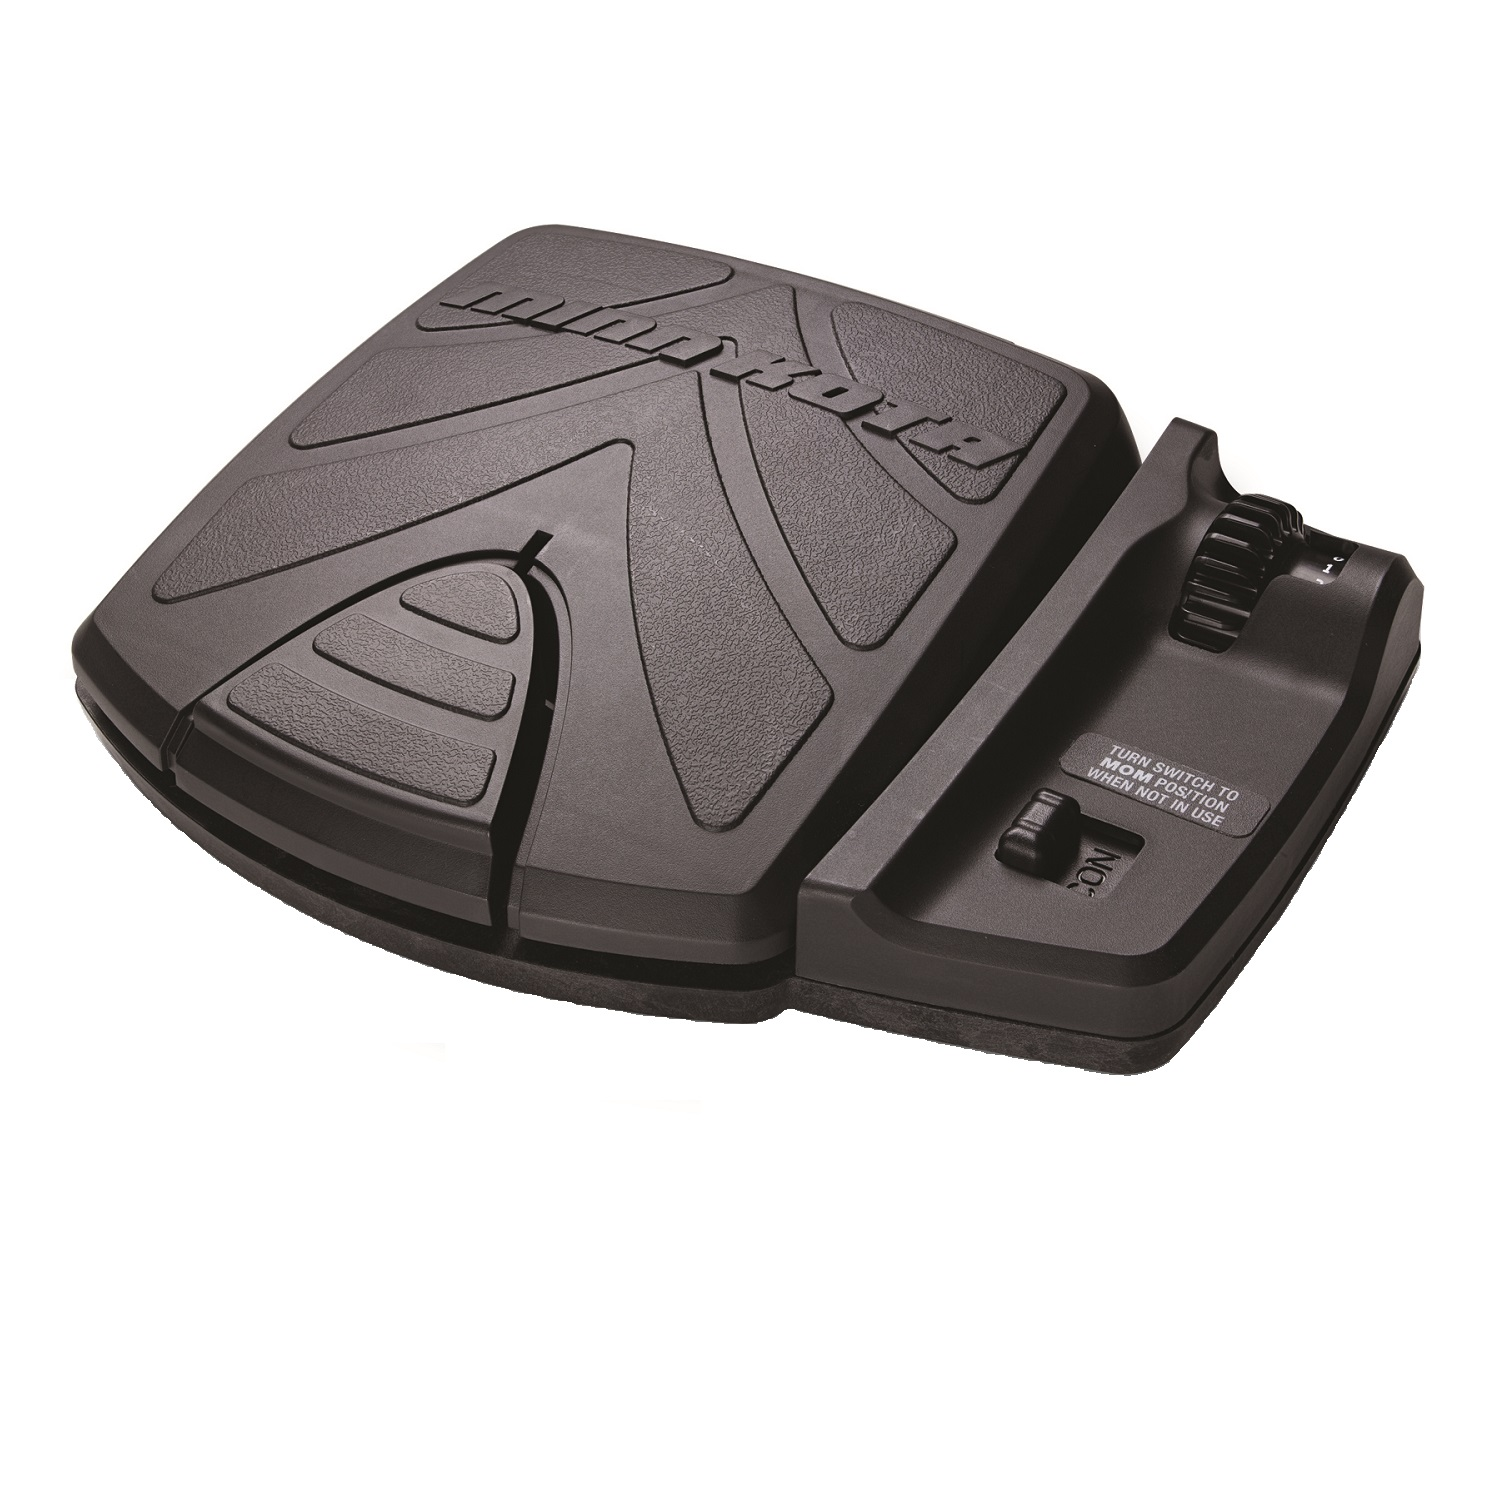 Minn Kota PowerDrive BT Foot Pedal Acc (Corded)